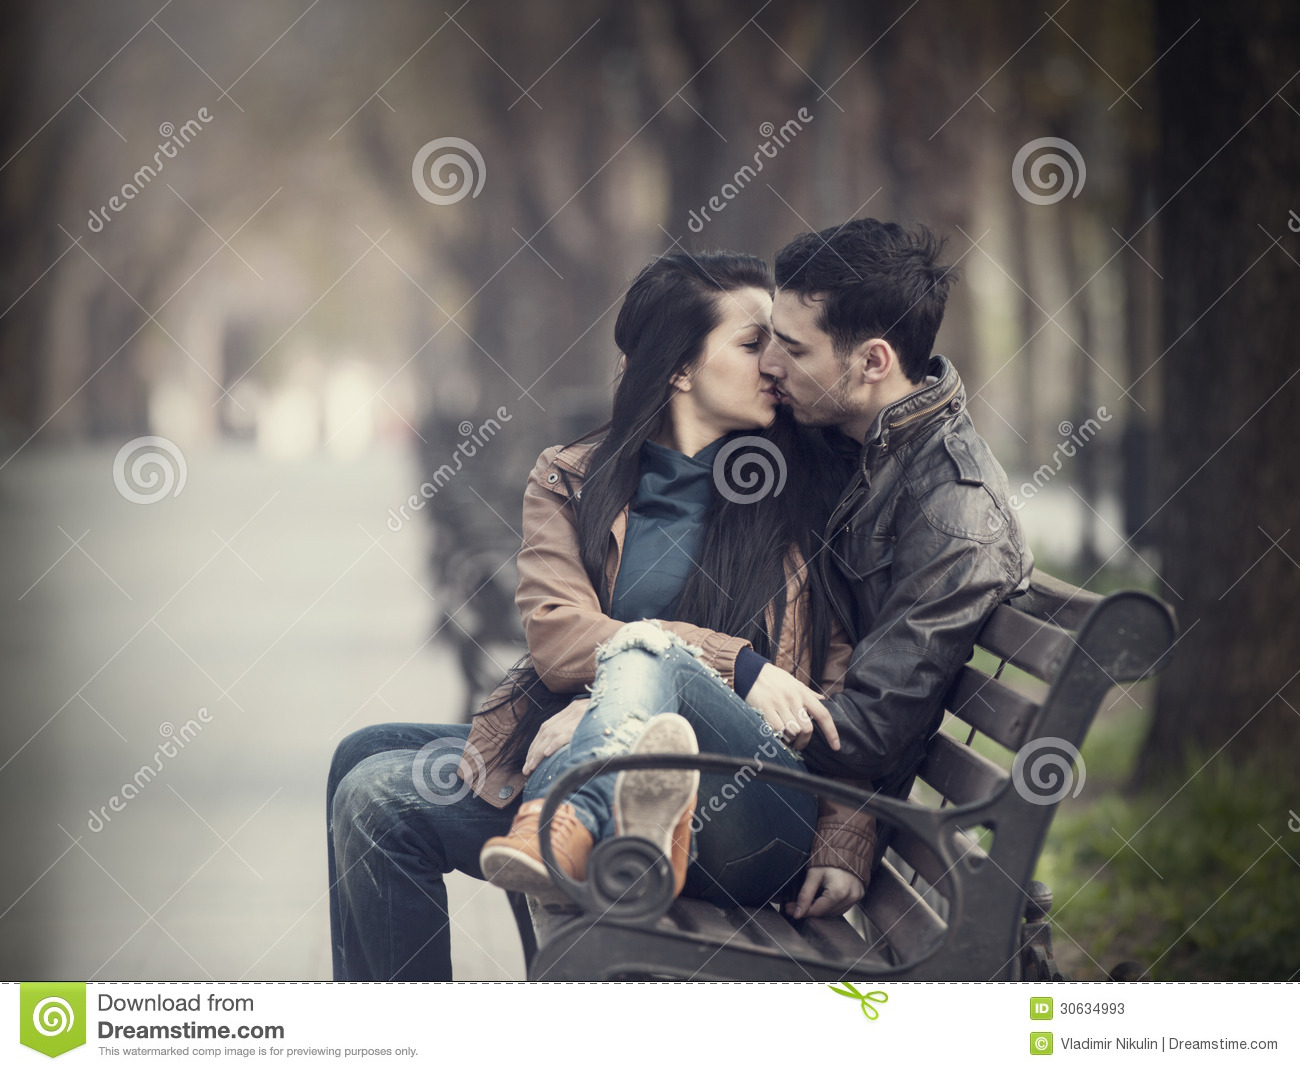 French Kiss Couple Images couple kissing at the bench at alley. stock image - image of france